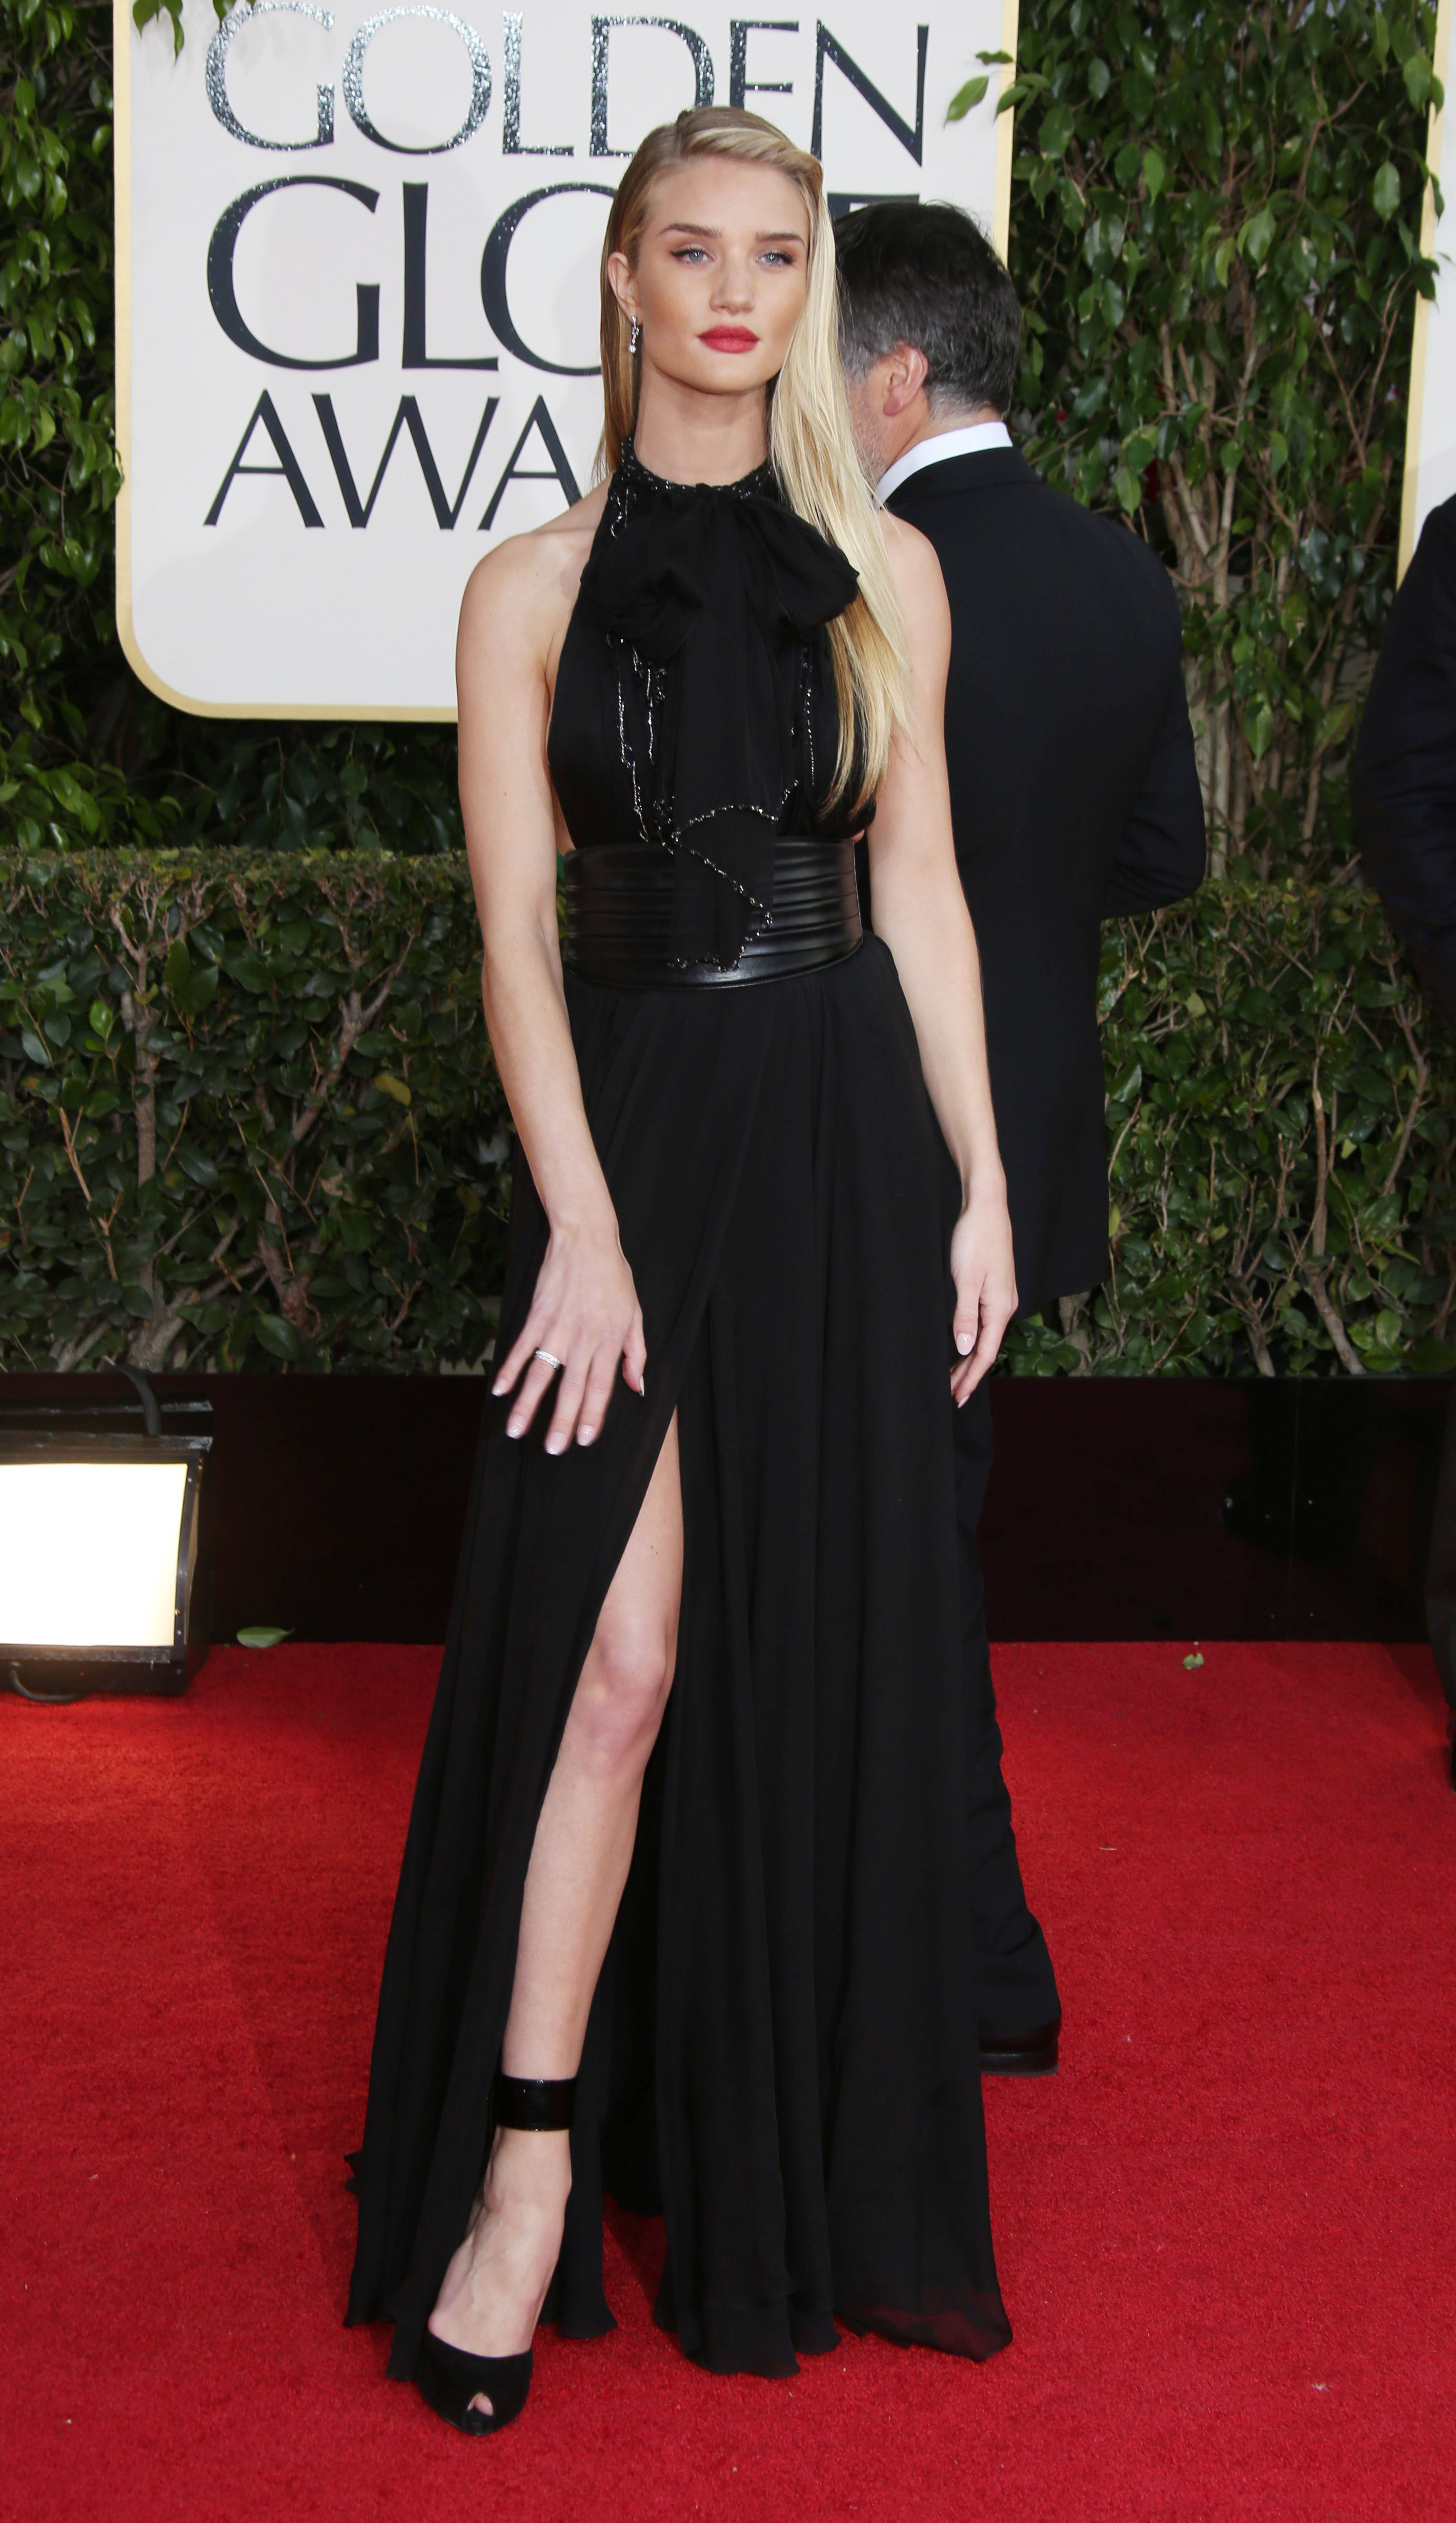 Rosie Huntington-Whiteley wearing a YSL high slit gown